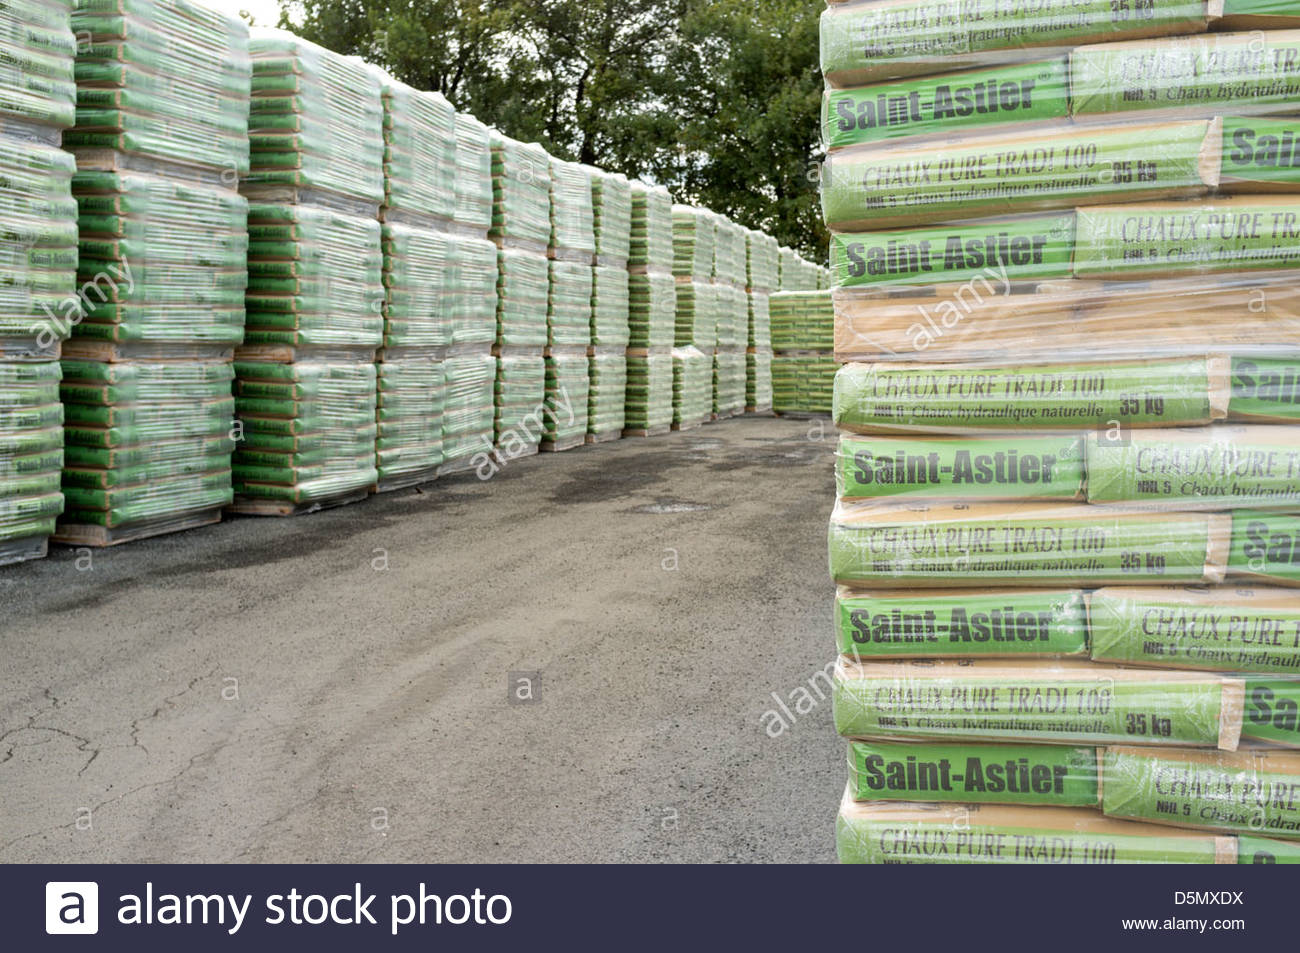 Sacks of hydraulic lime at the Saint-Astier Lime plant, Dordogne, Aquitaine, France - Stock Image